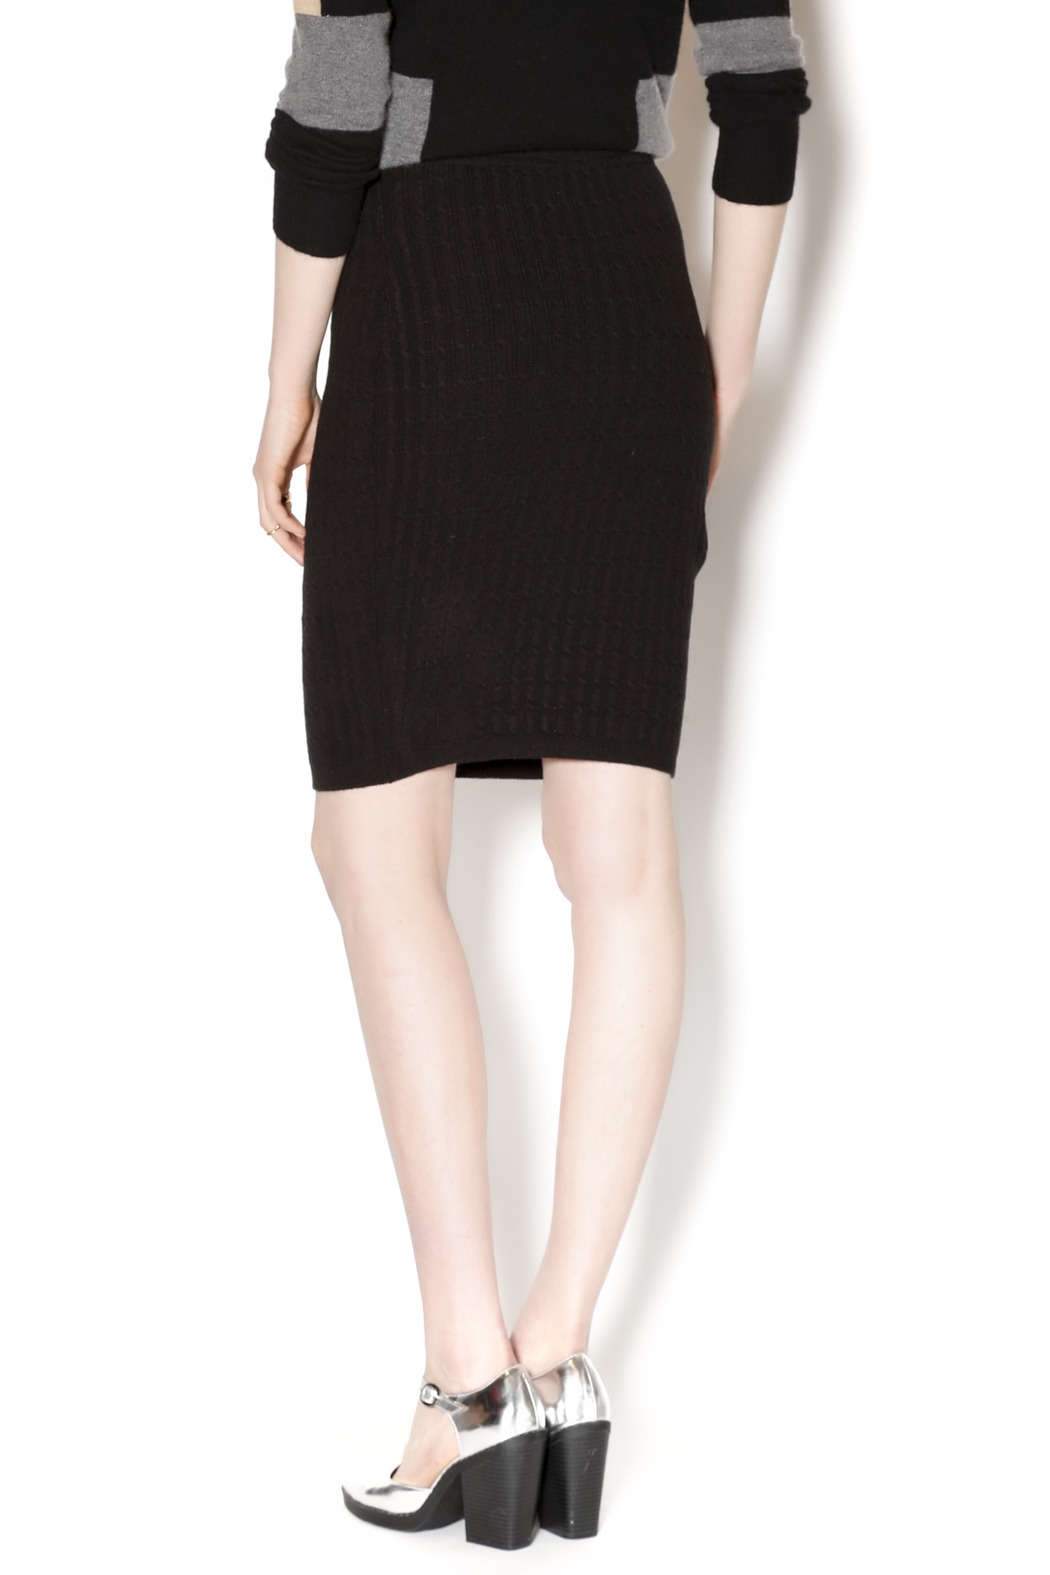 M. Rena Cable Sweater Skirt - Back Cropped Image